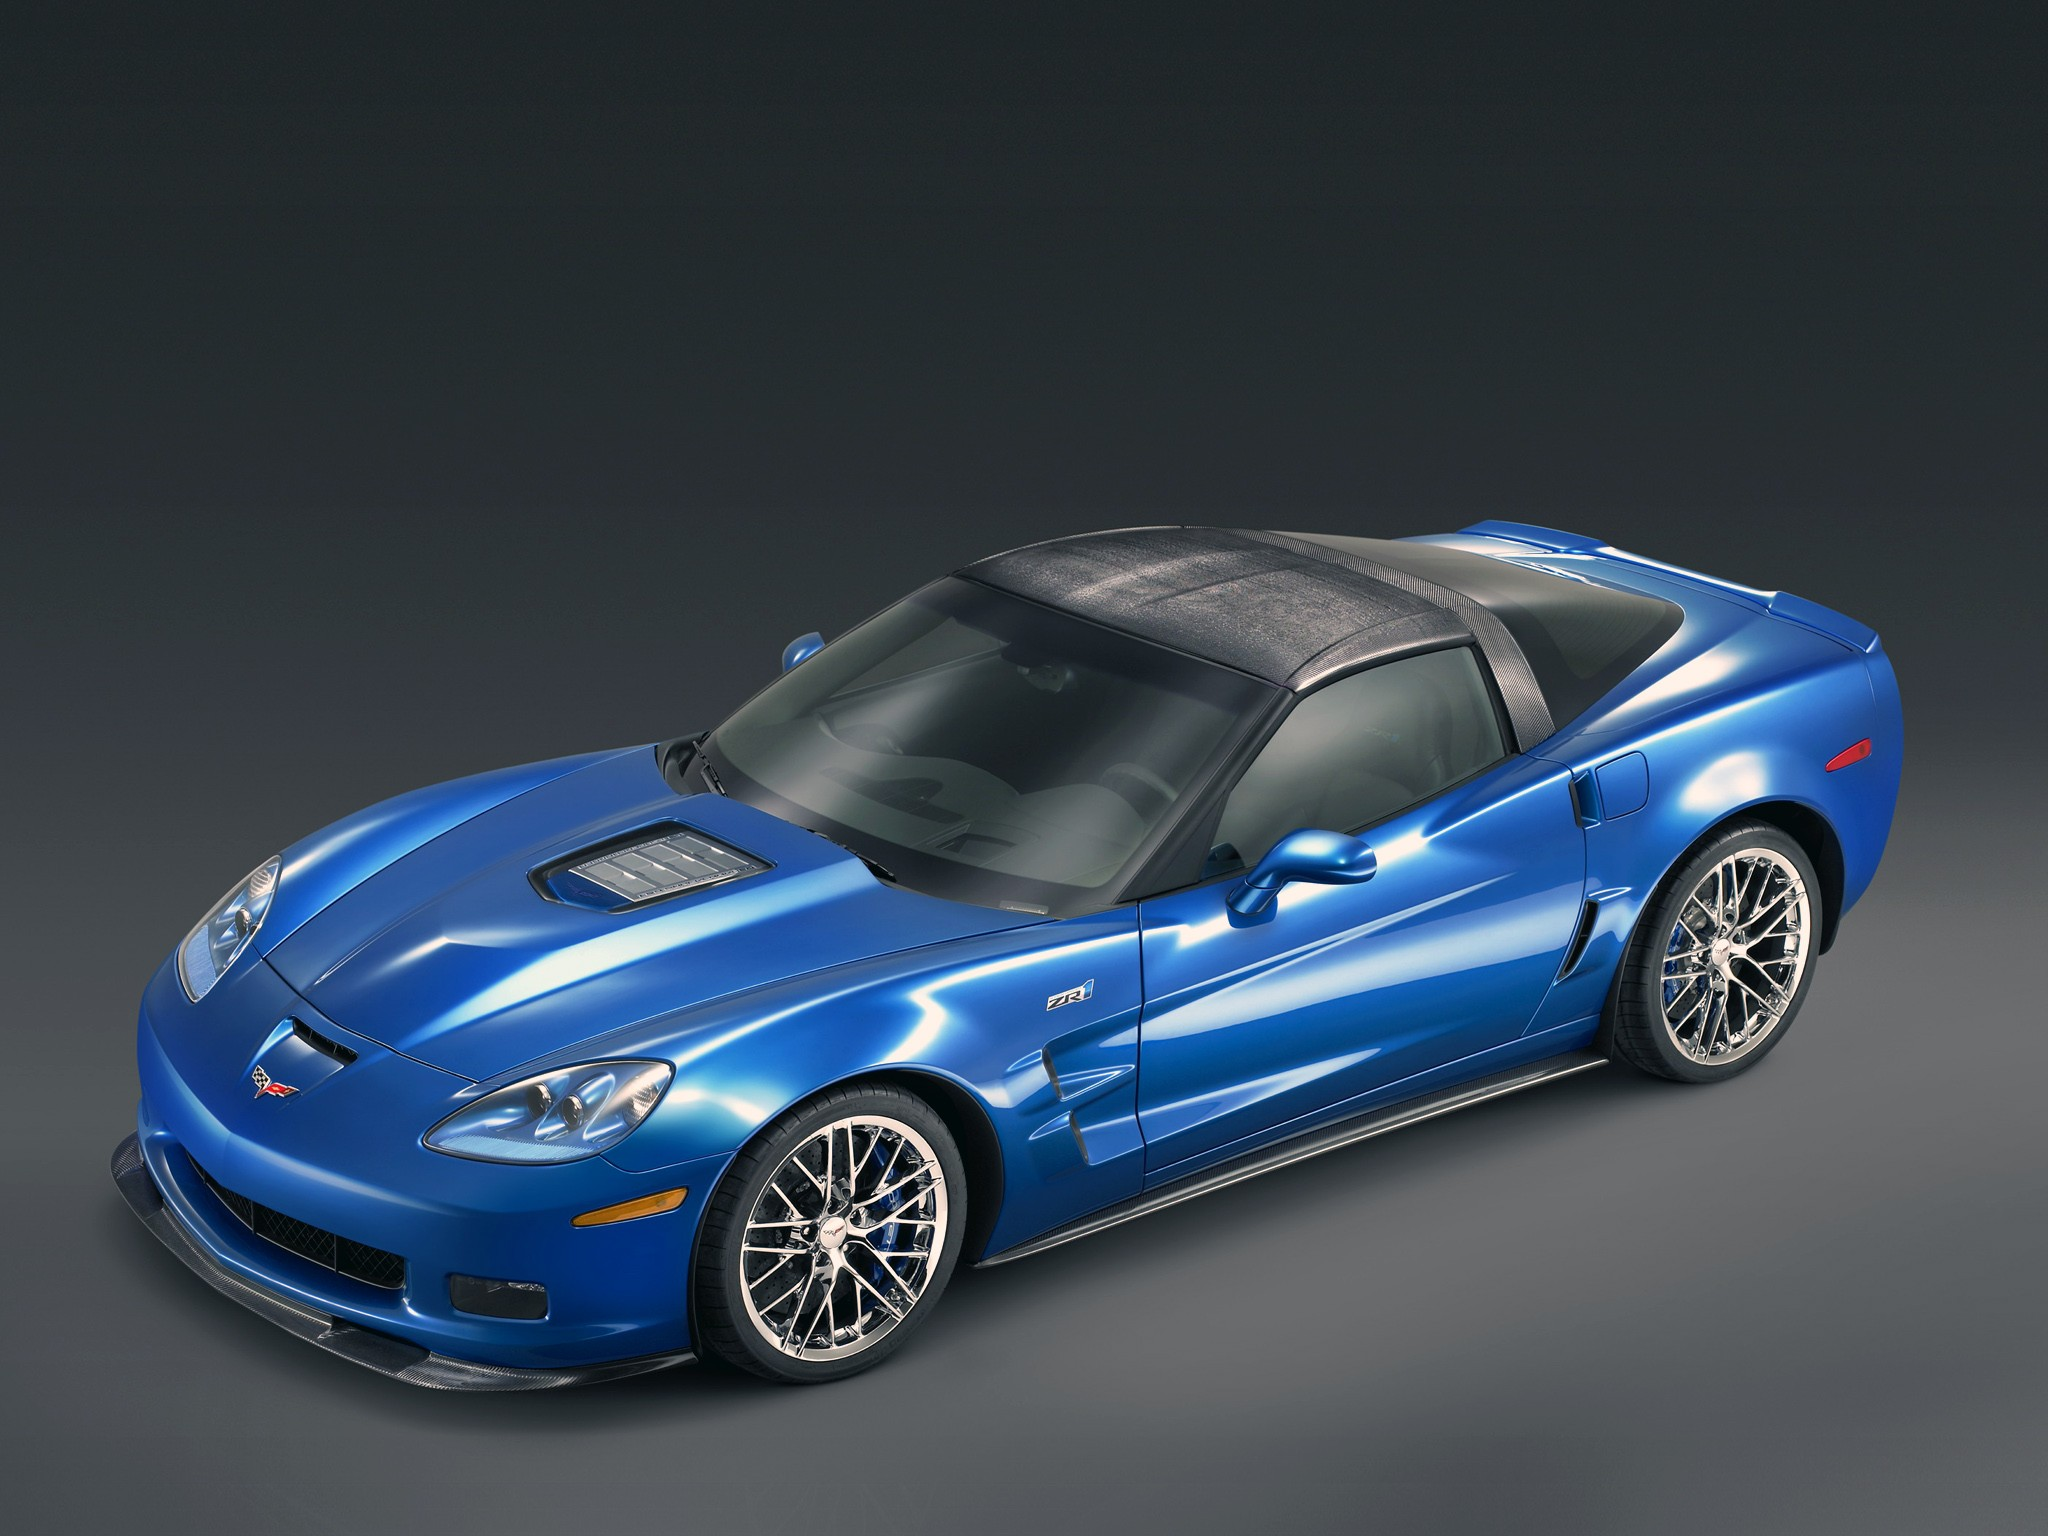 Chevrolet Corvette Zr1 Specs Amp Photos 2008 2009 2010